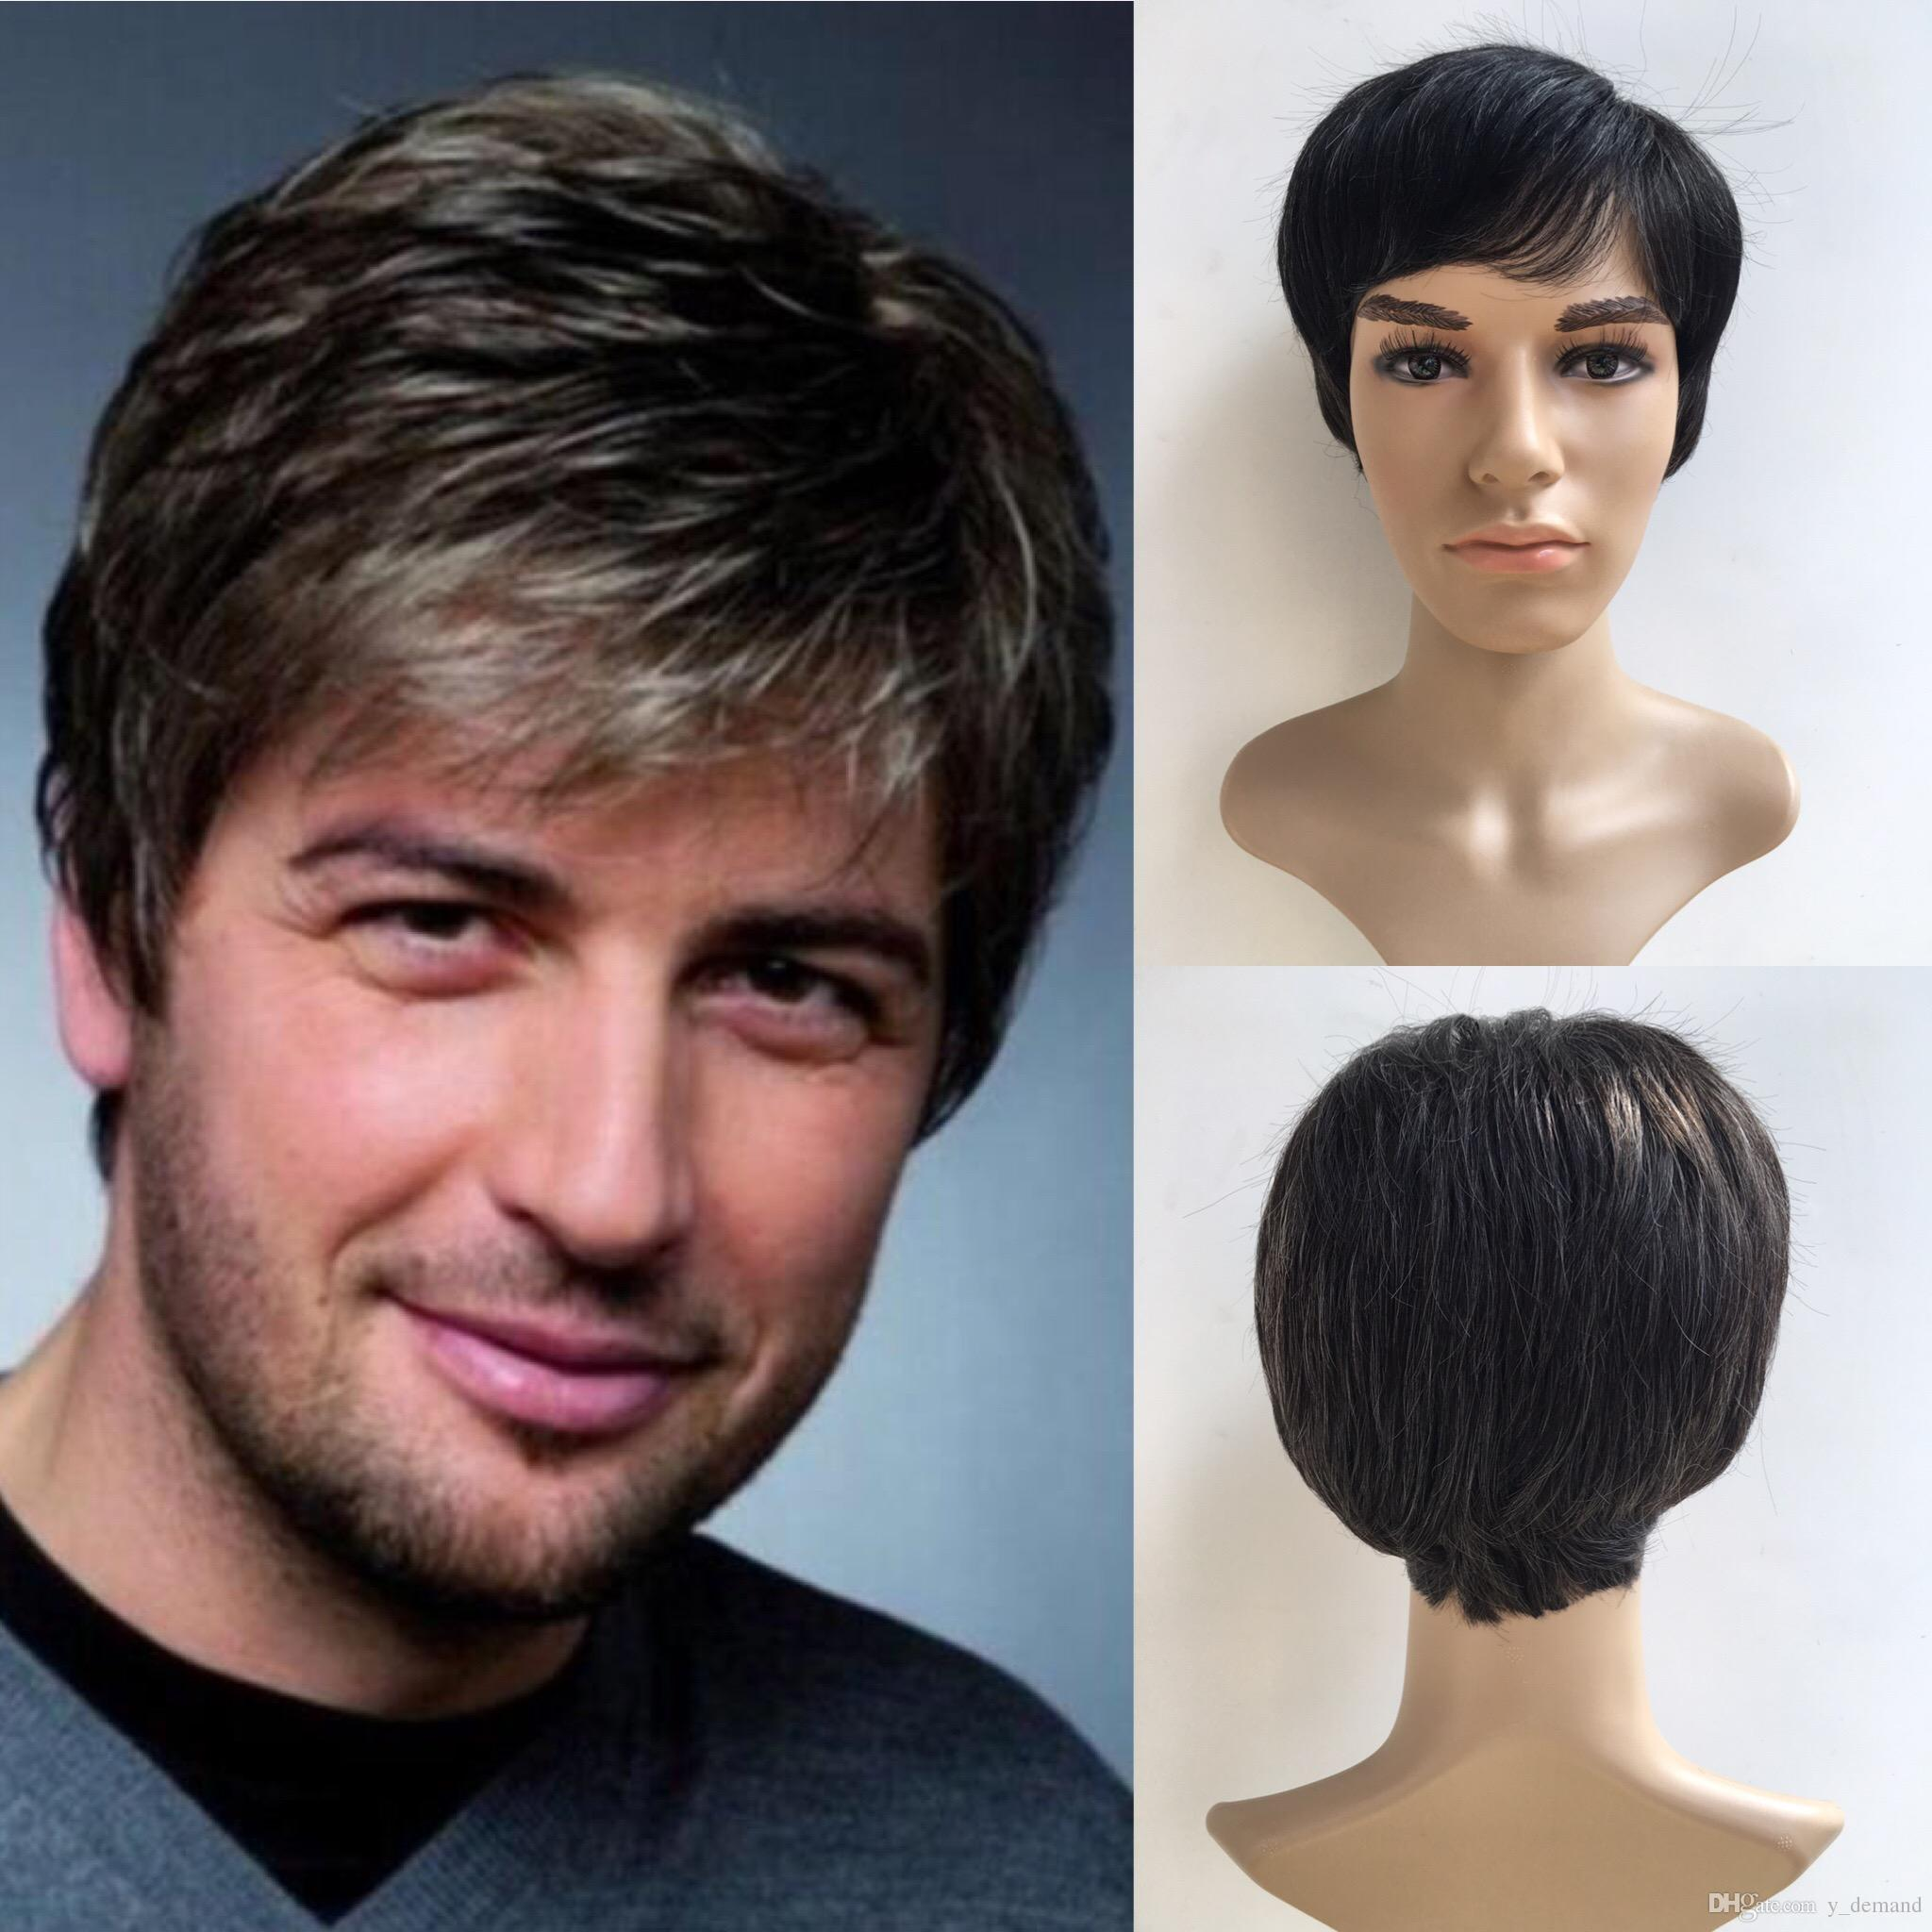 Fashion Handsome Short Grey Men S Wig Synthetic Hair Father Gifts Straight  Wig None Lace Wig Y Demand Cheap Full Lace Wig Merle Norman Wigs From  Y demand 7516c0e3c13d